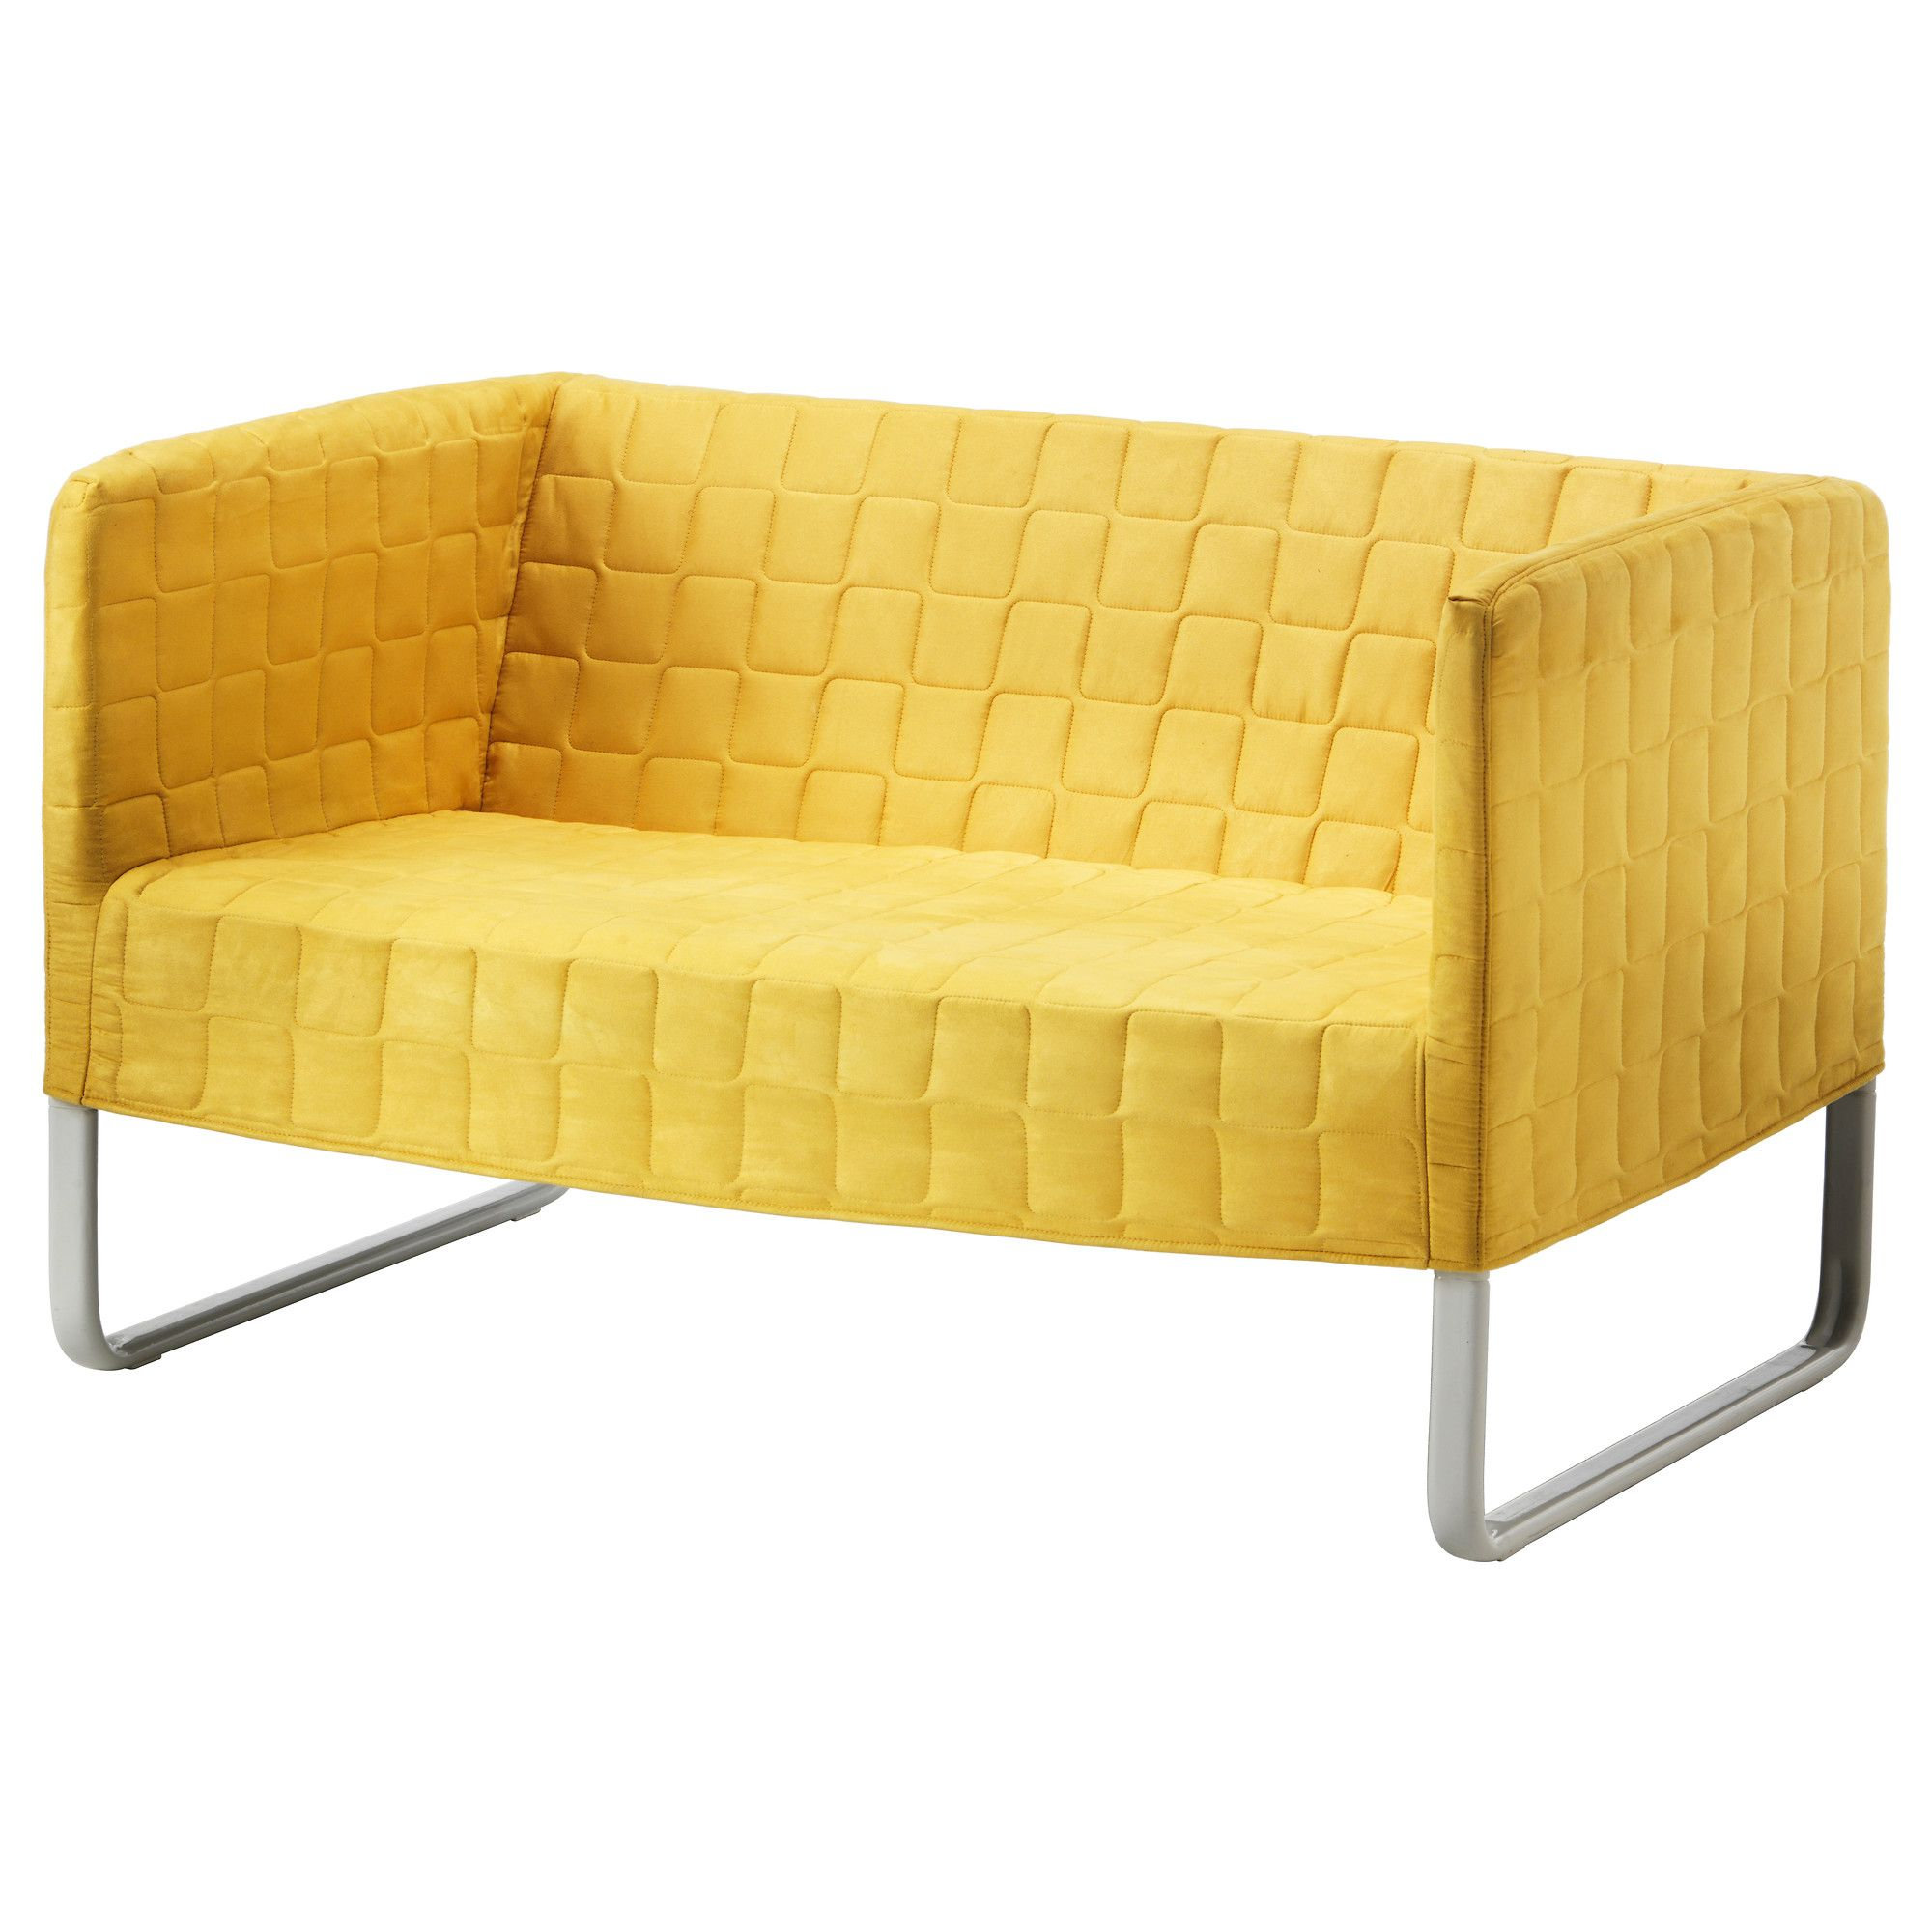 Ikea Knopparp Sofa Knopparp Loveseat Bright Yellow Ikea Dorm Ideas